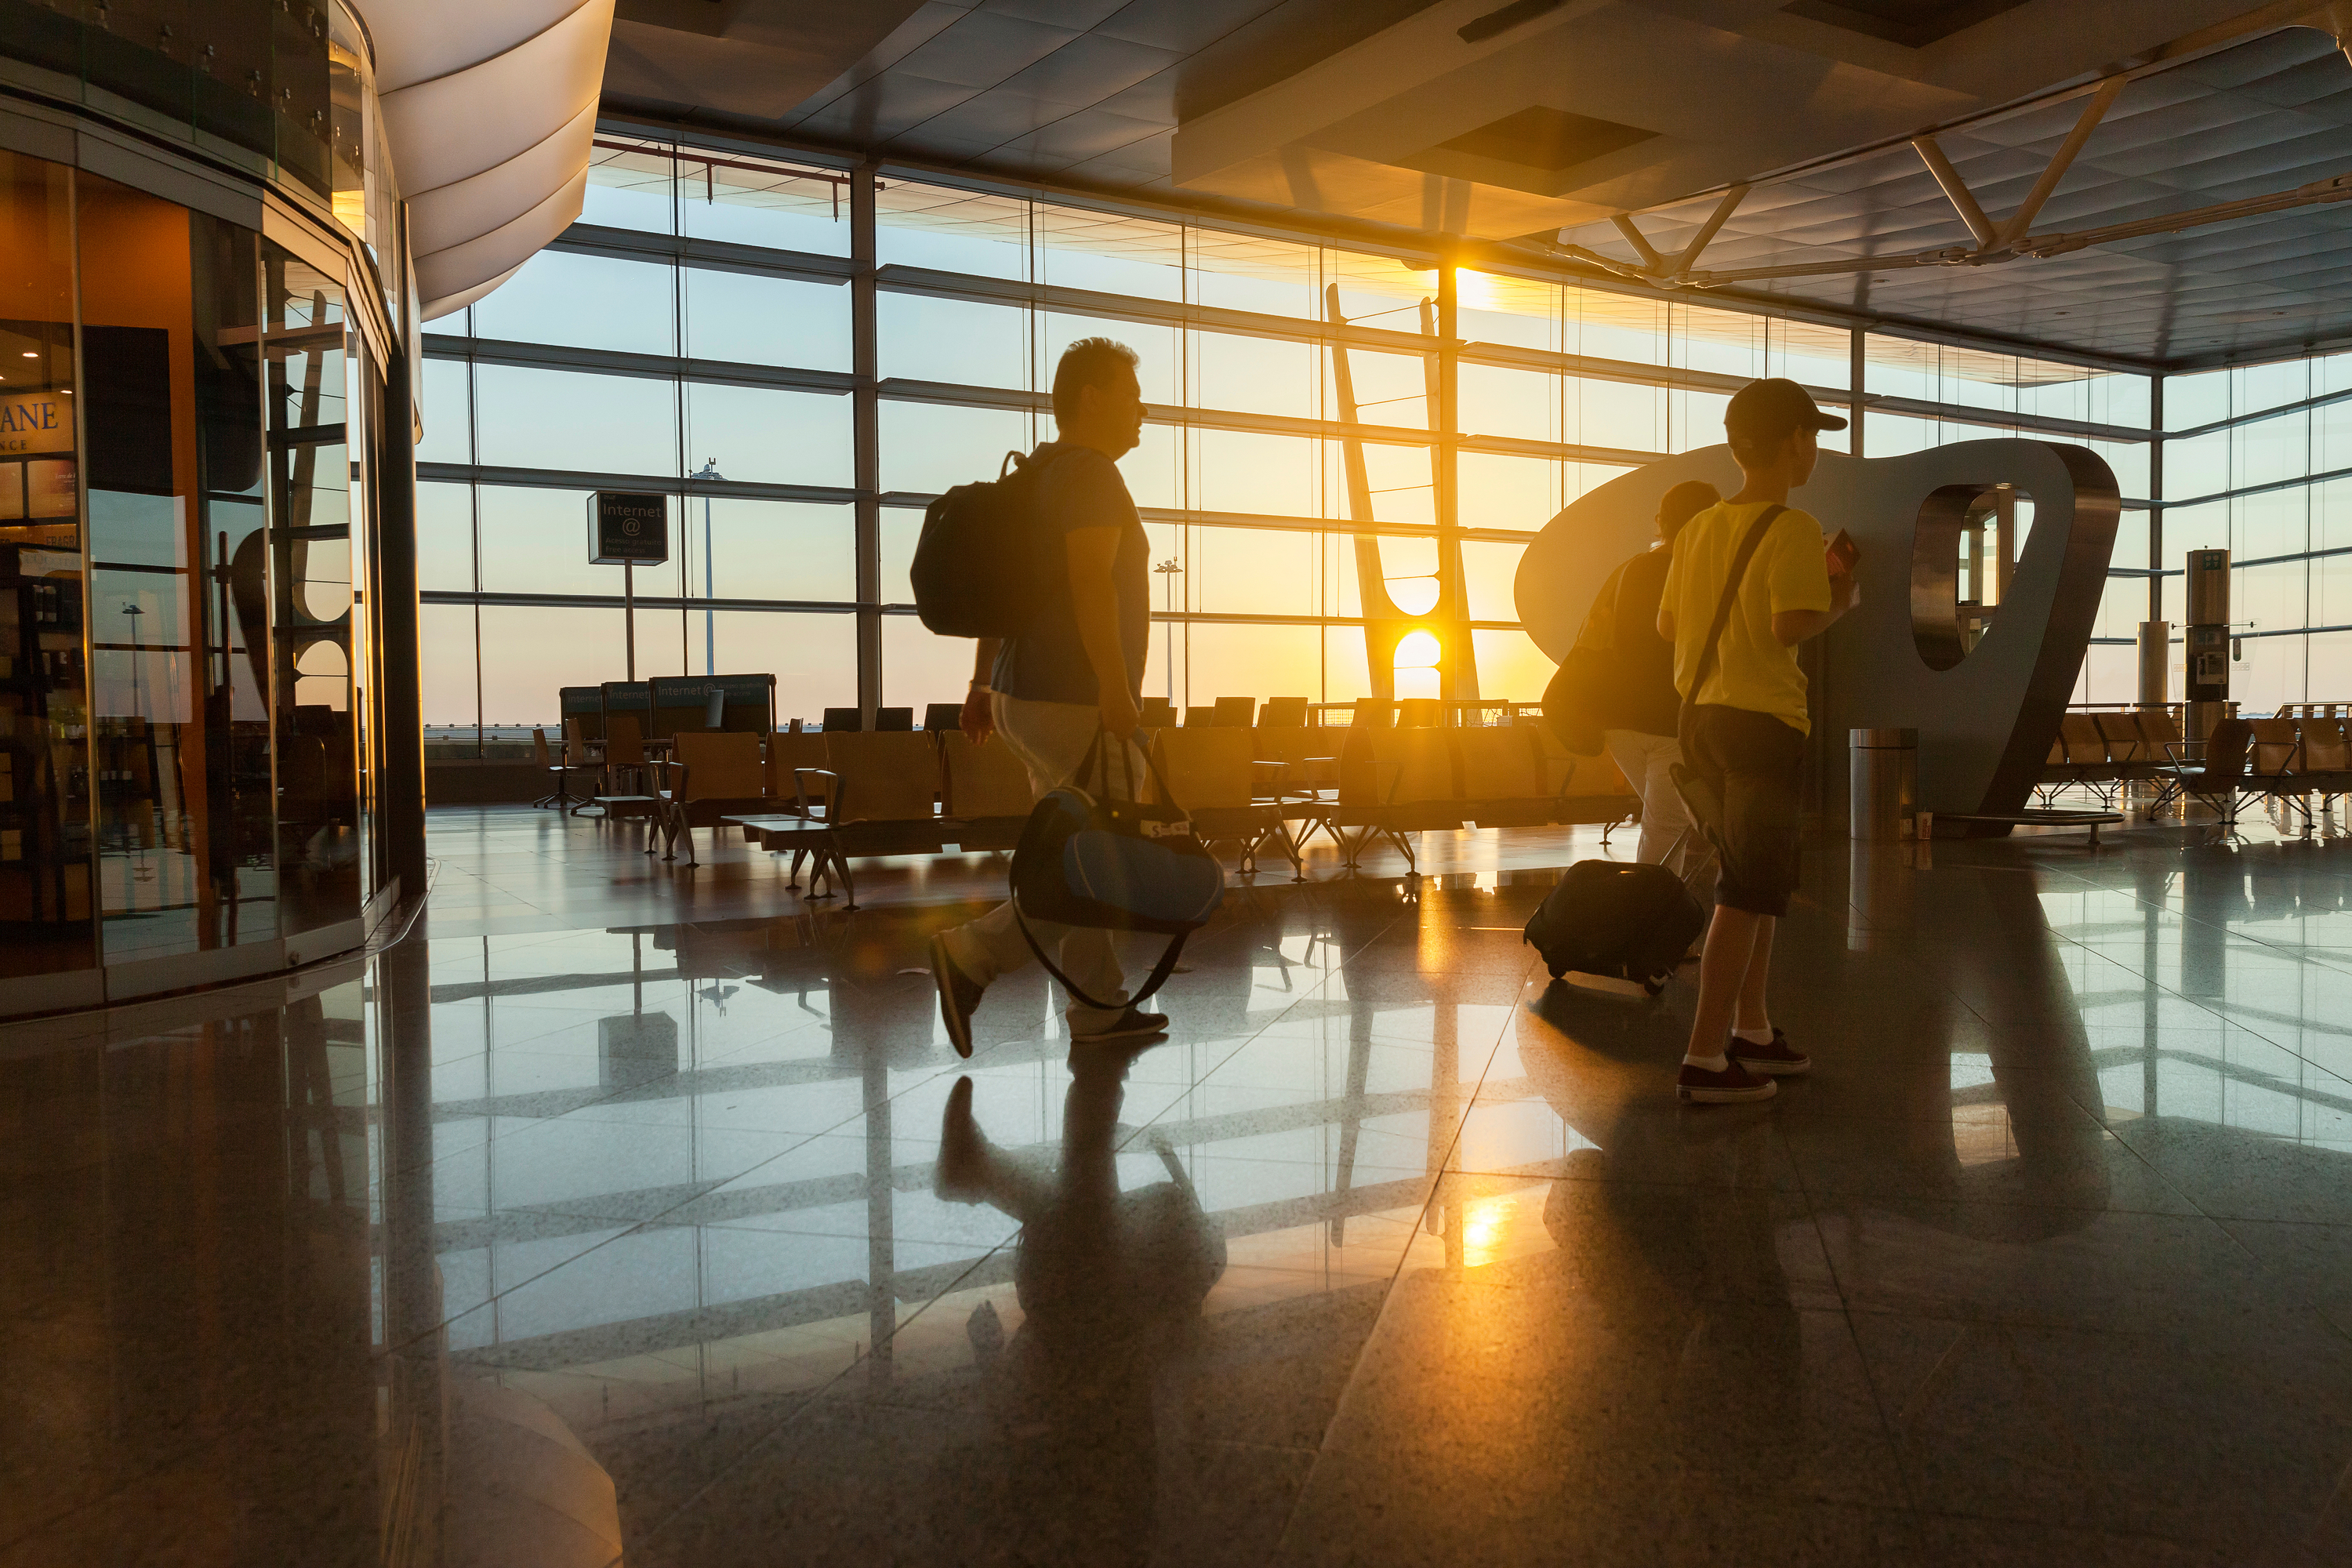 It can be so stressful to fly during the Thanksgiving season. These amazing Thanksgiving travel tips will help ease the stress of traveling.